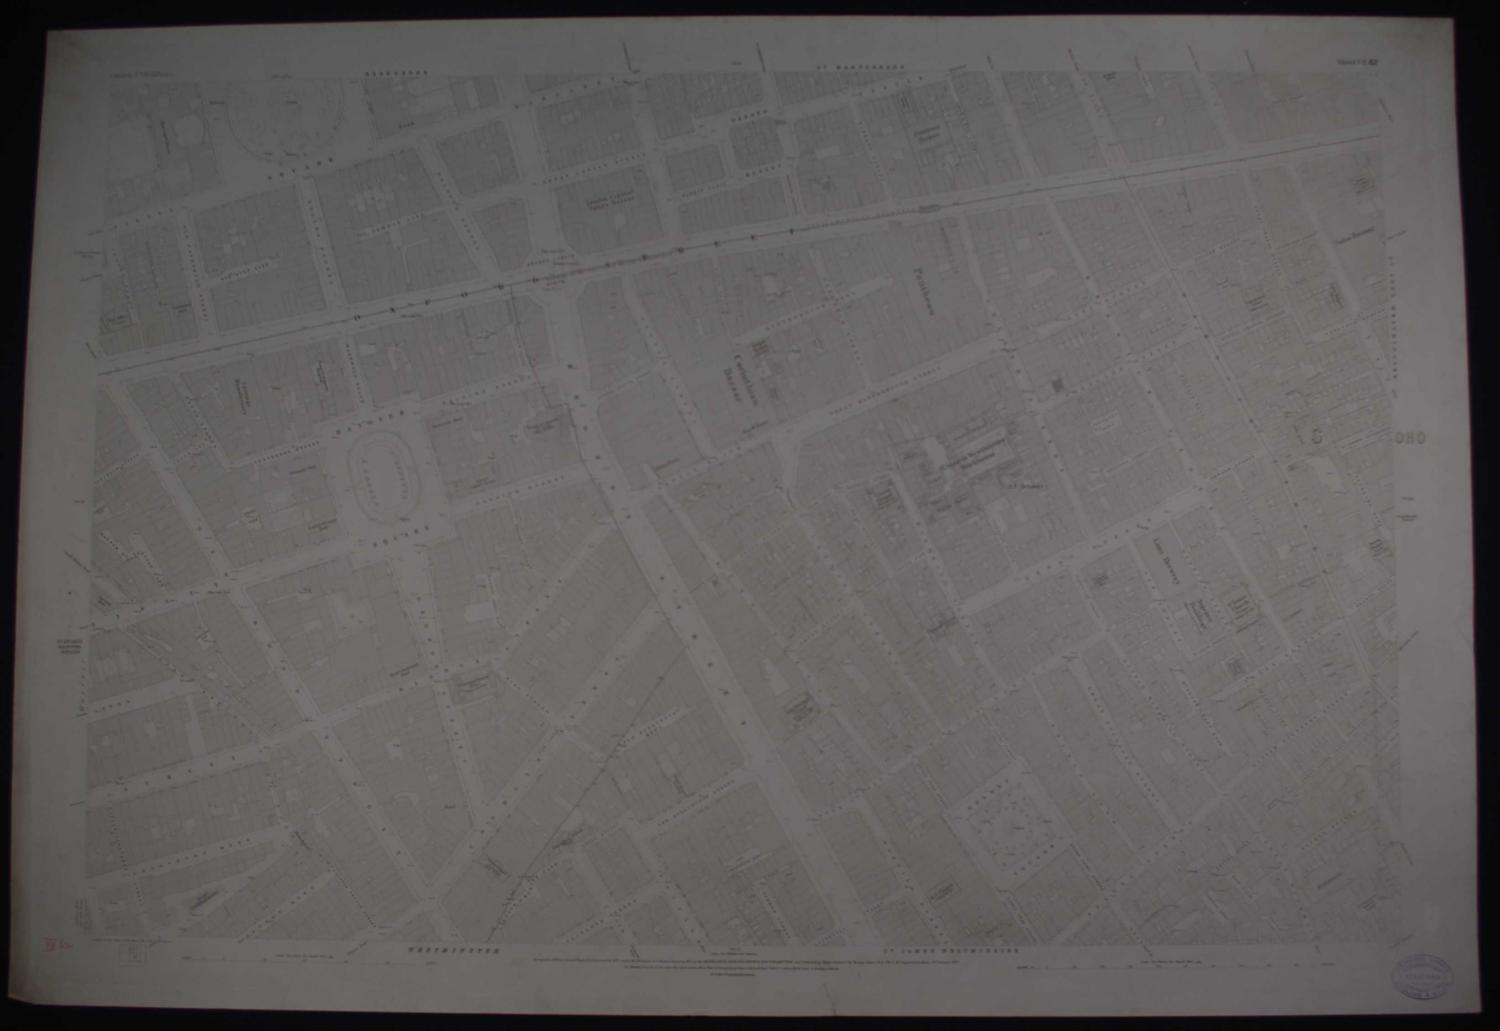 London. Sheet  VII. 62 by Ordnance Survey